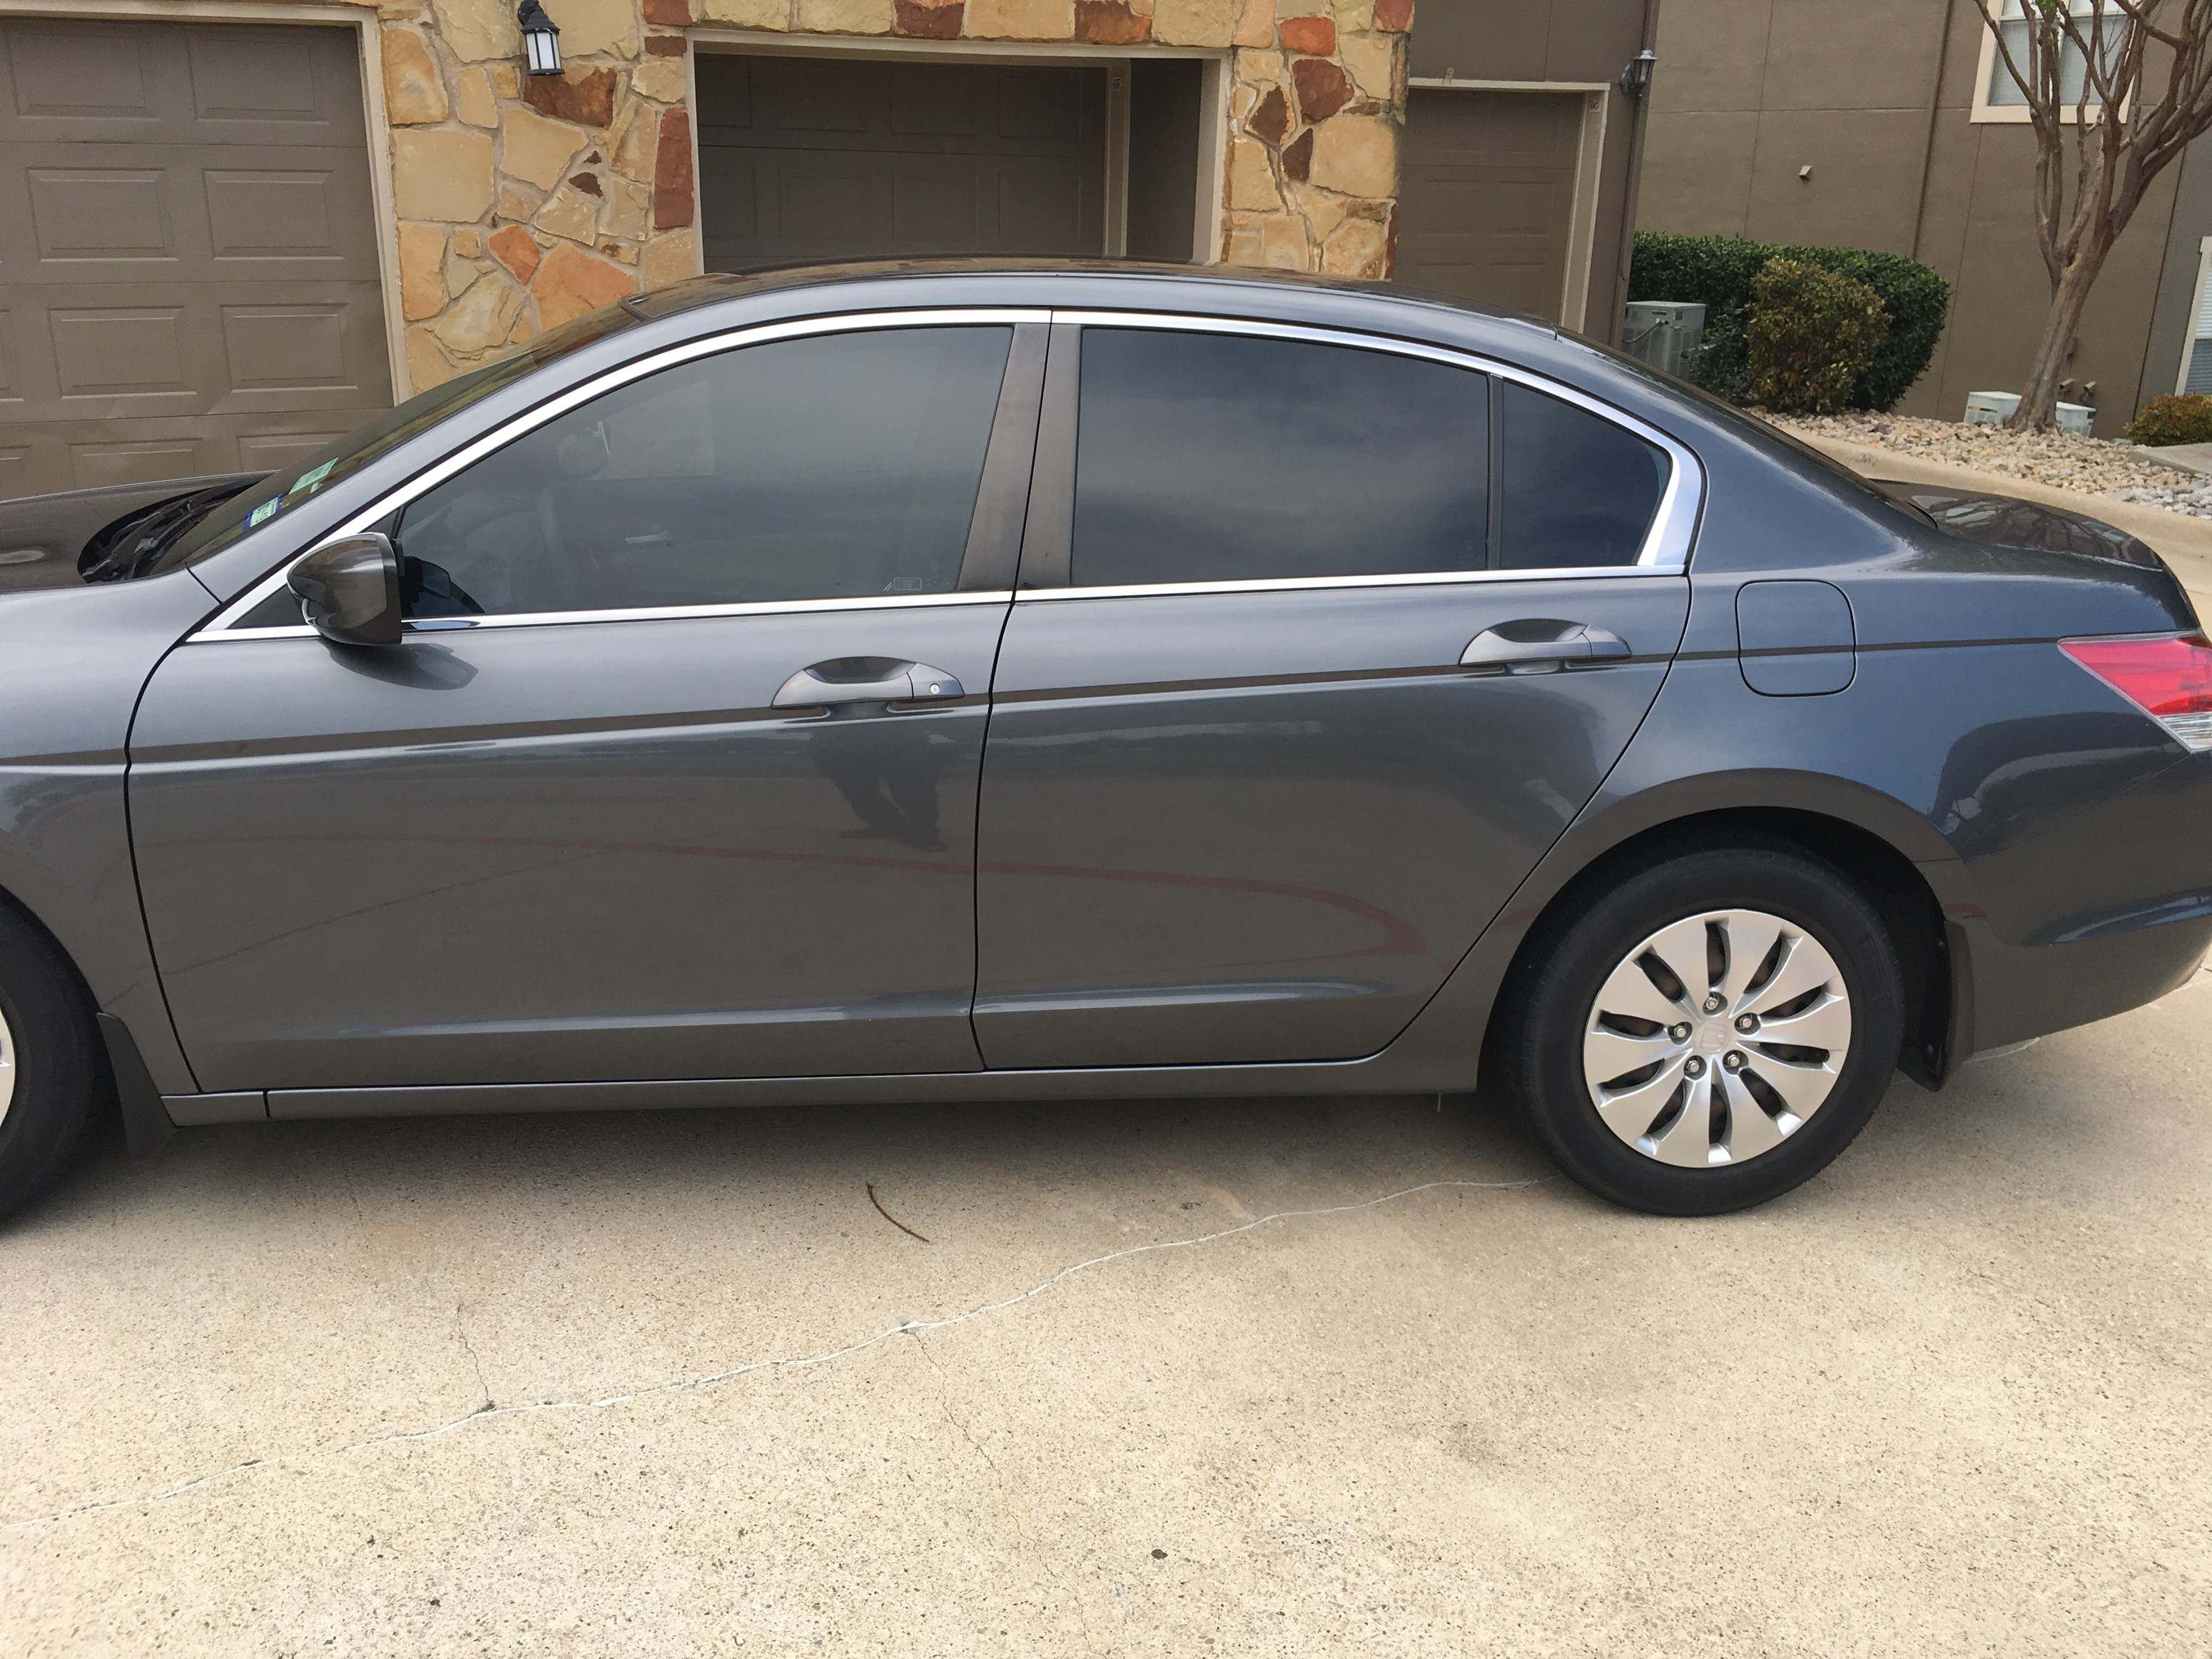 Honda Accord 2010 In Very Good Condition$ Used Honda Accord Cars in